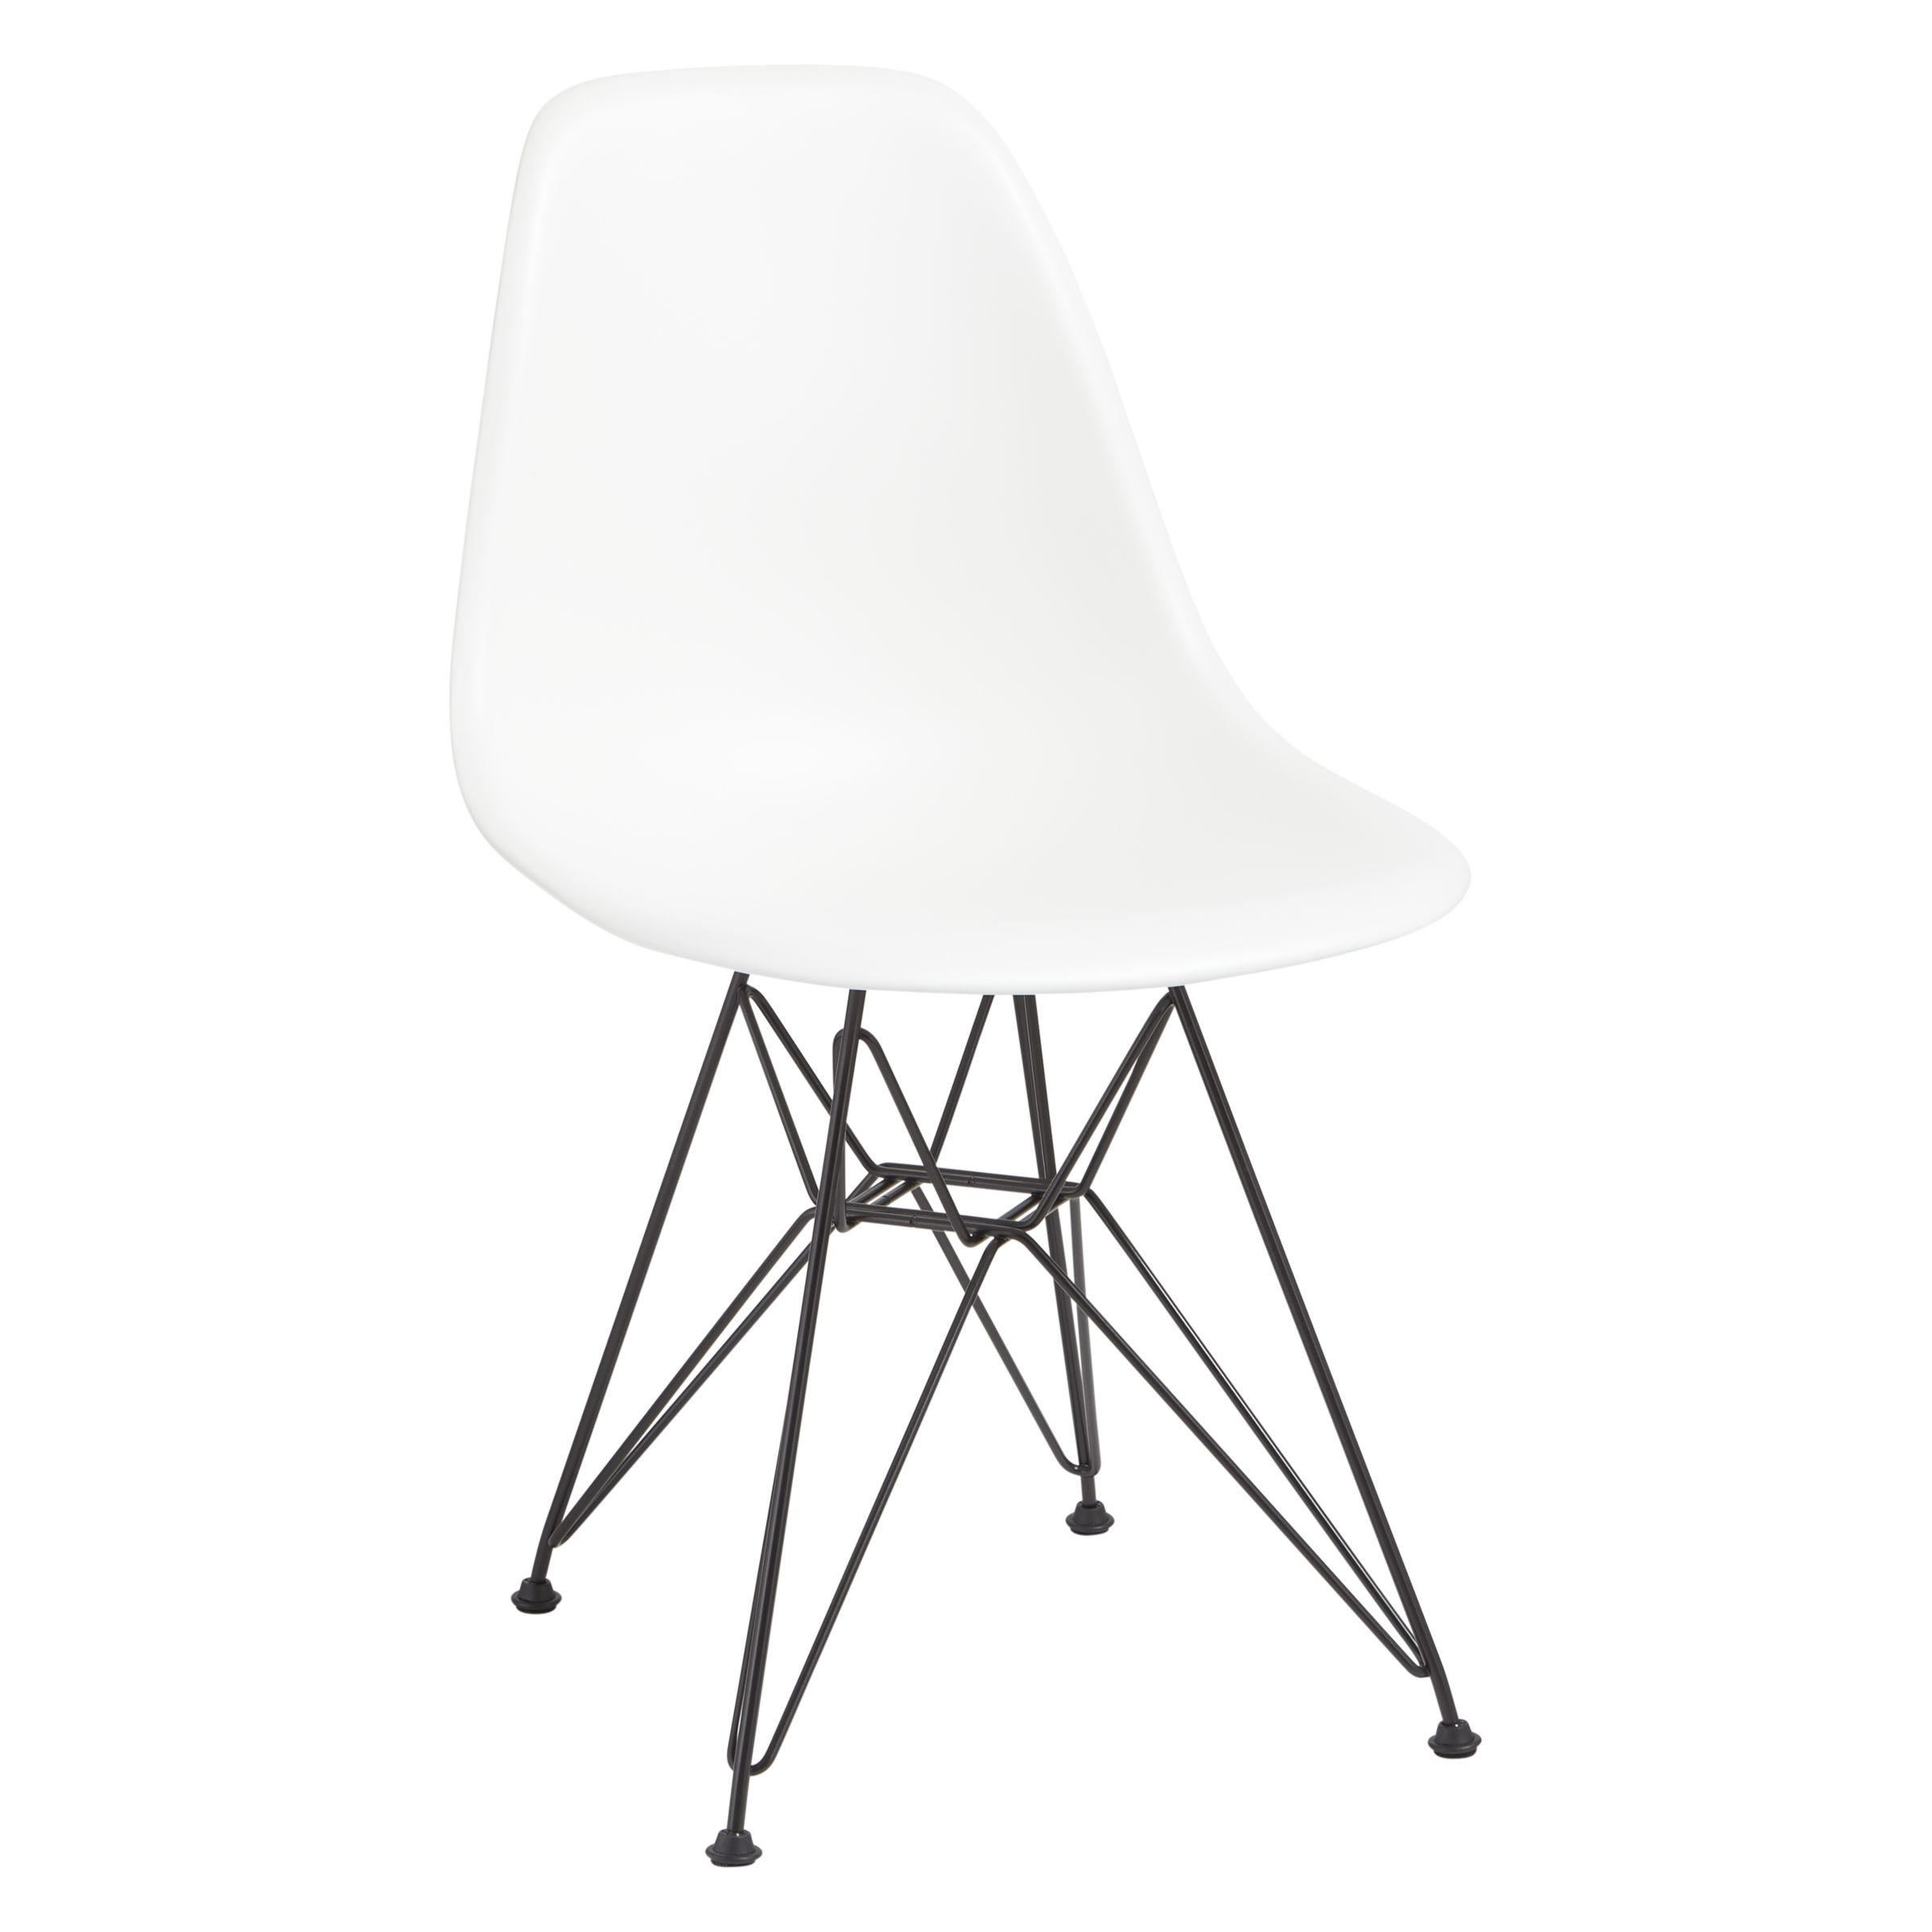 Vitra Eames Side Chair Vitra Eames Dsr Side Chair Black Metal Leg At John Lewis Partners